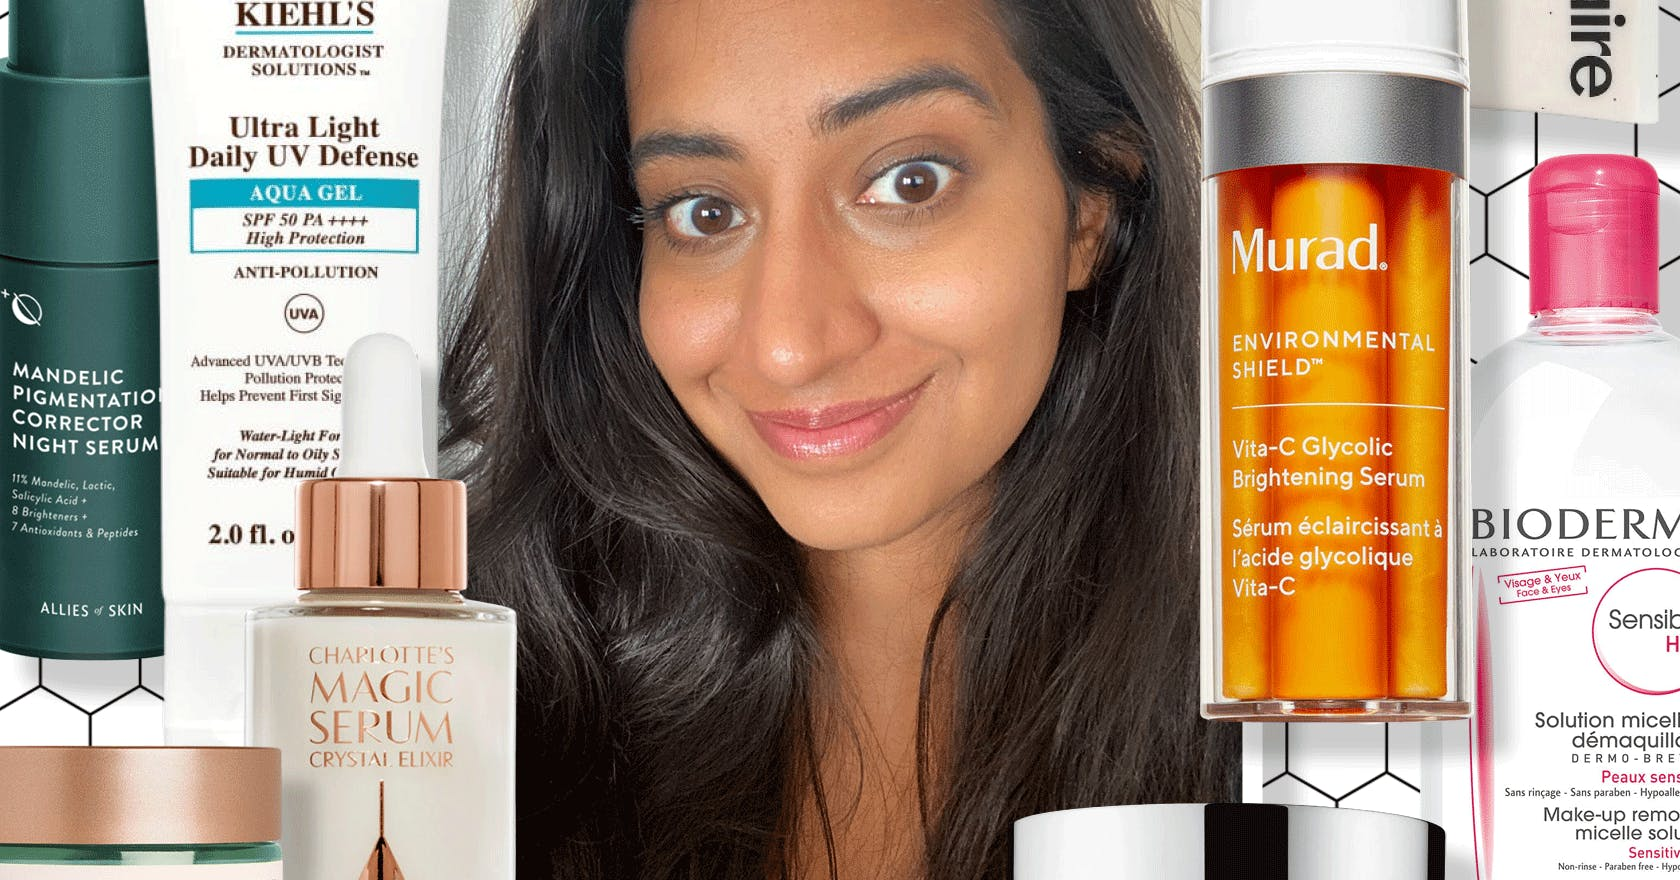 Every single product our senior beauty writer uses on her combination skin